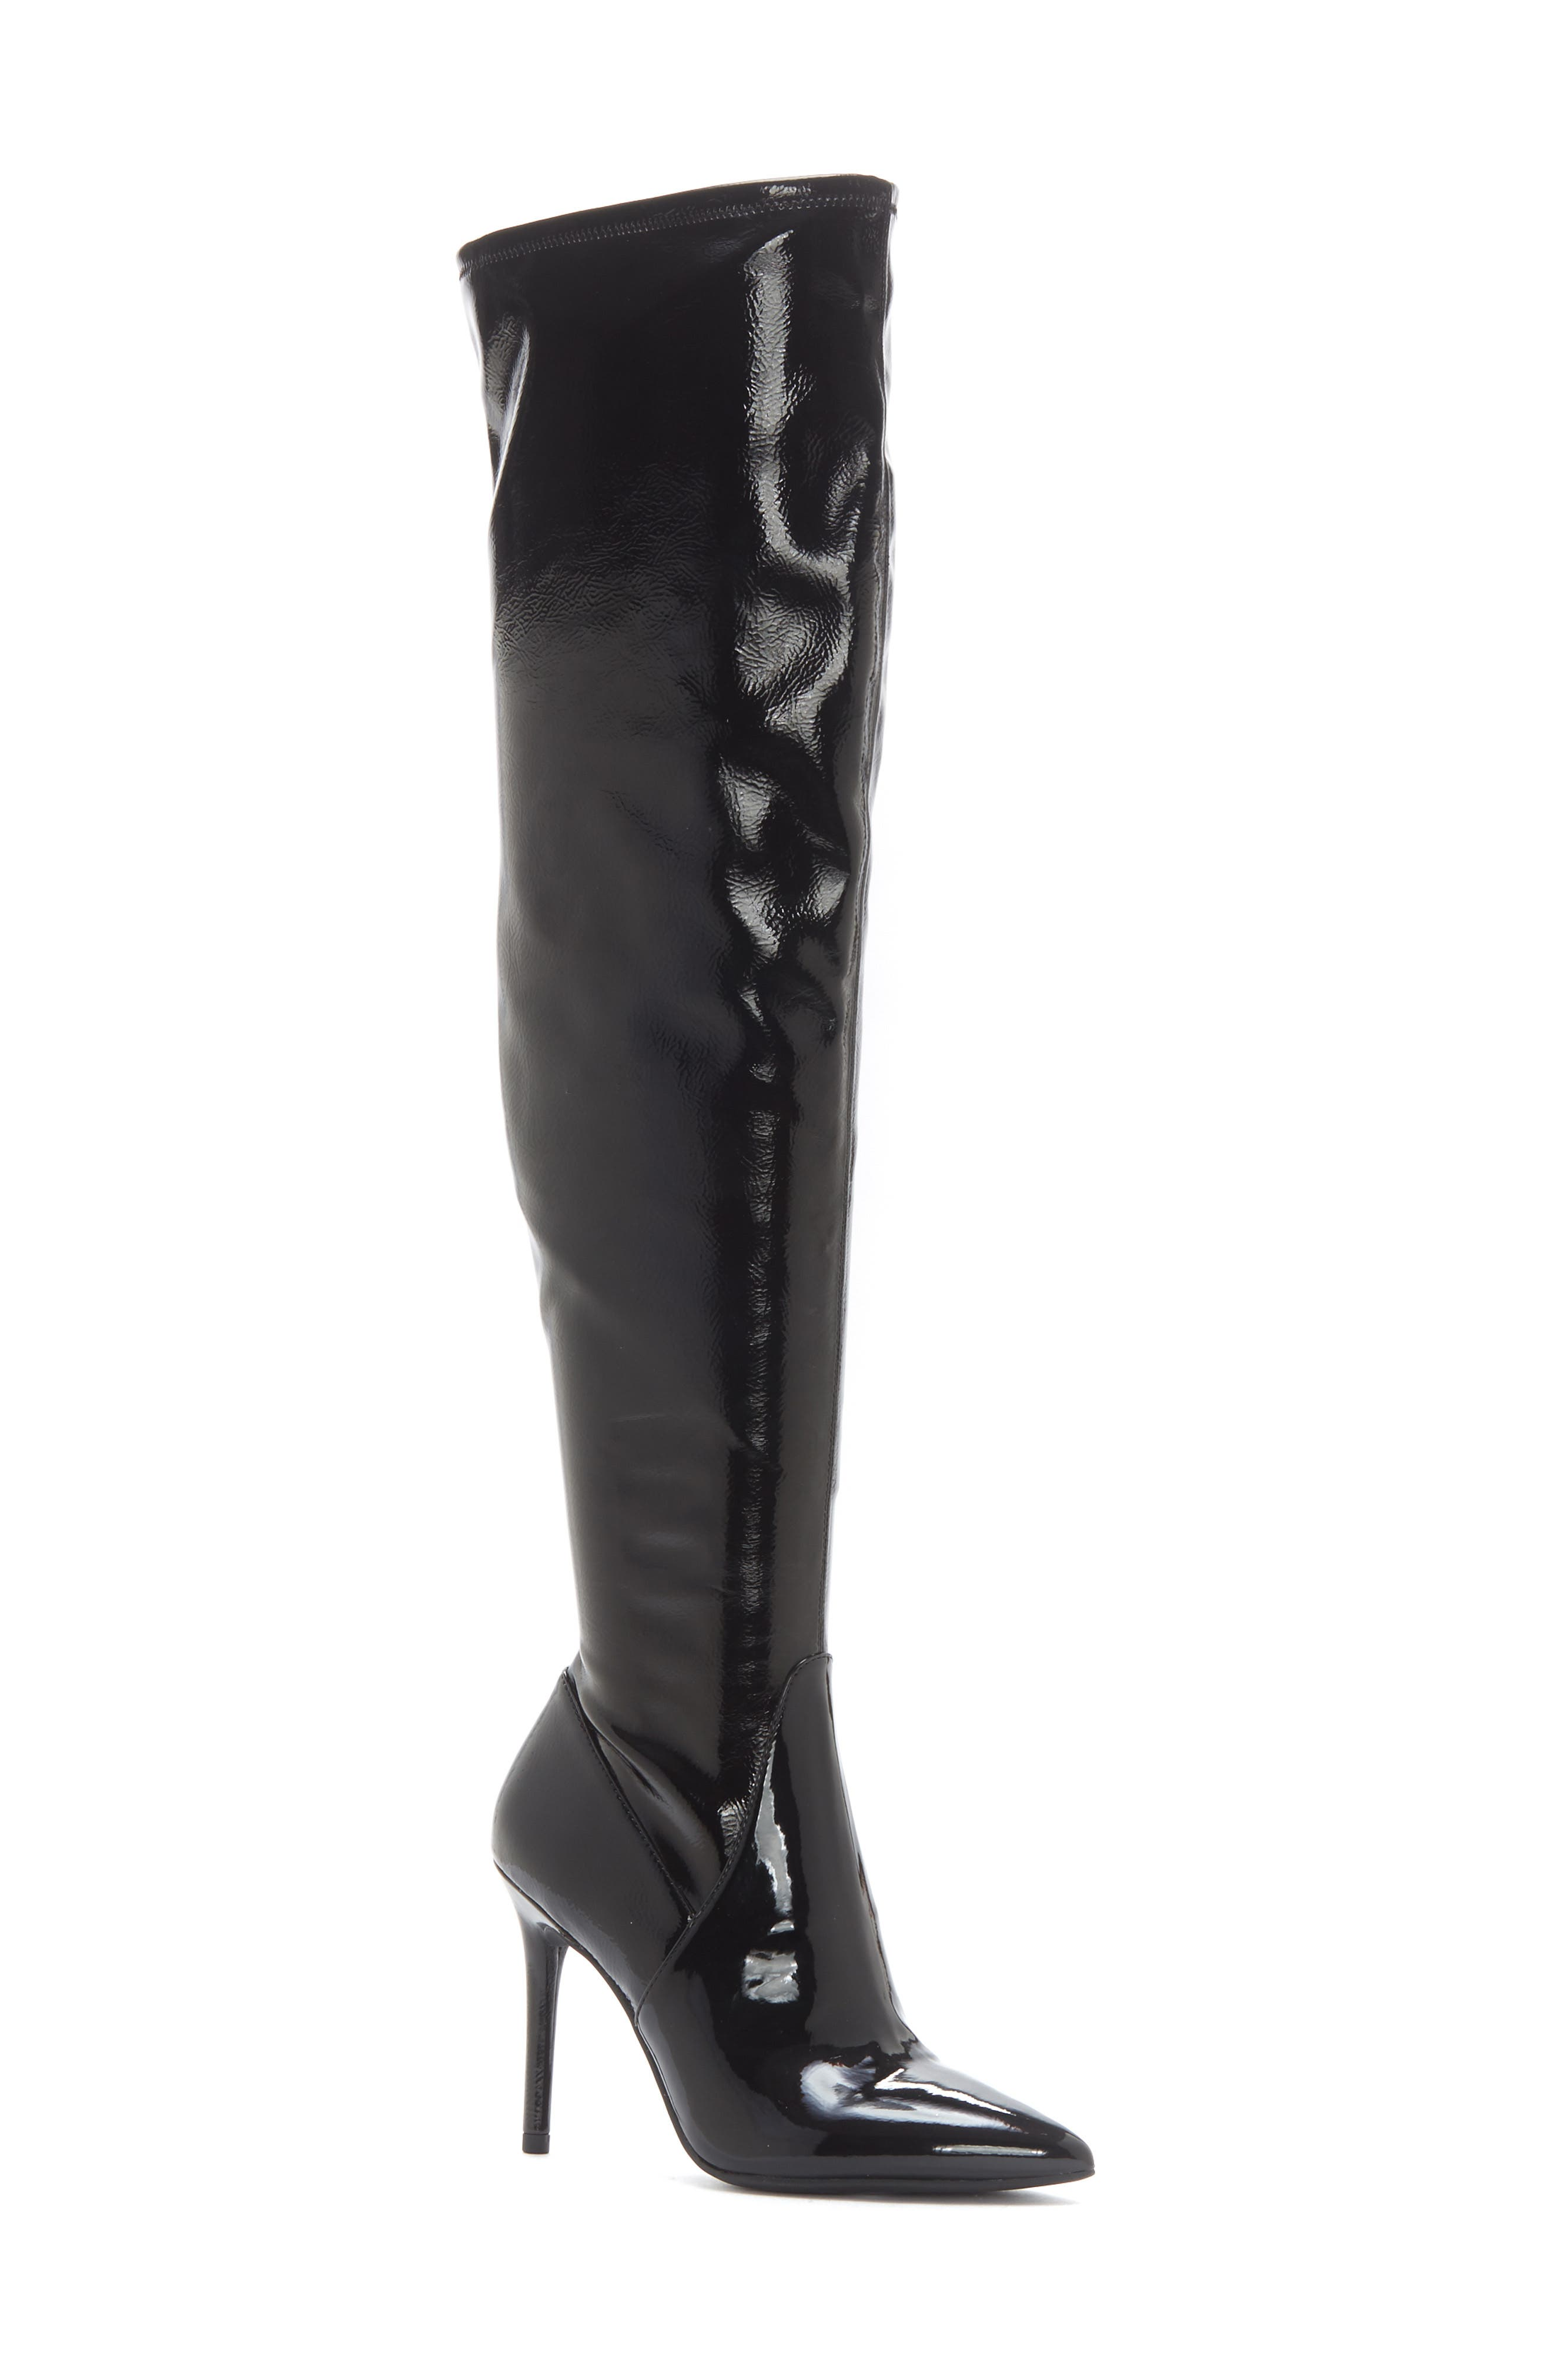 6eaa1c510a9 Women s Boots Jessica Simpson